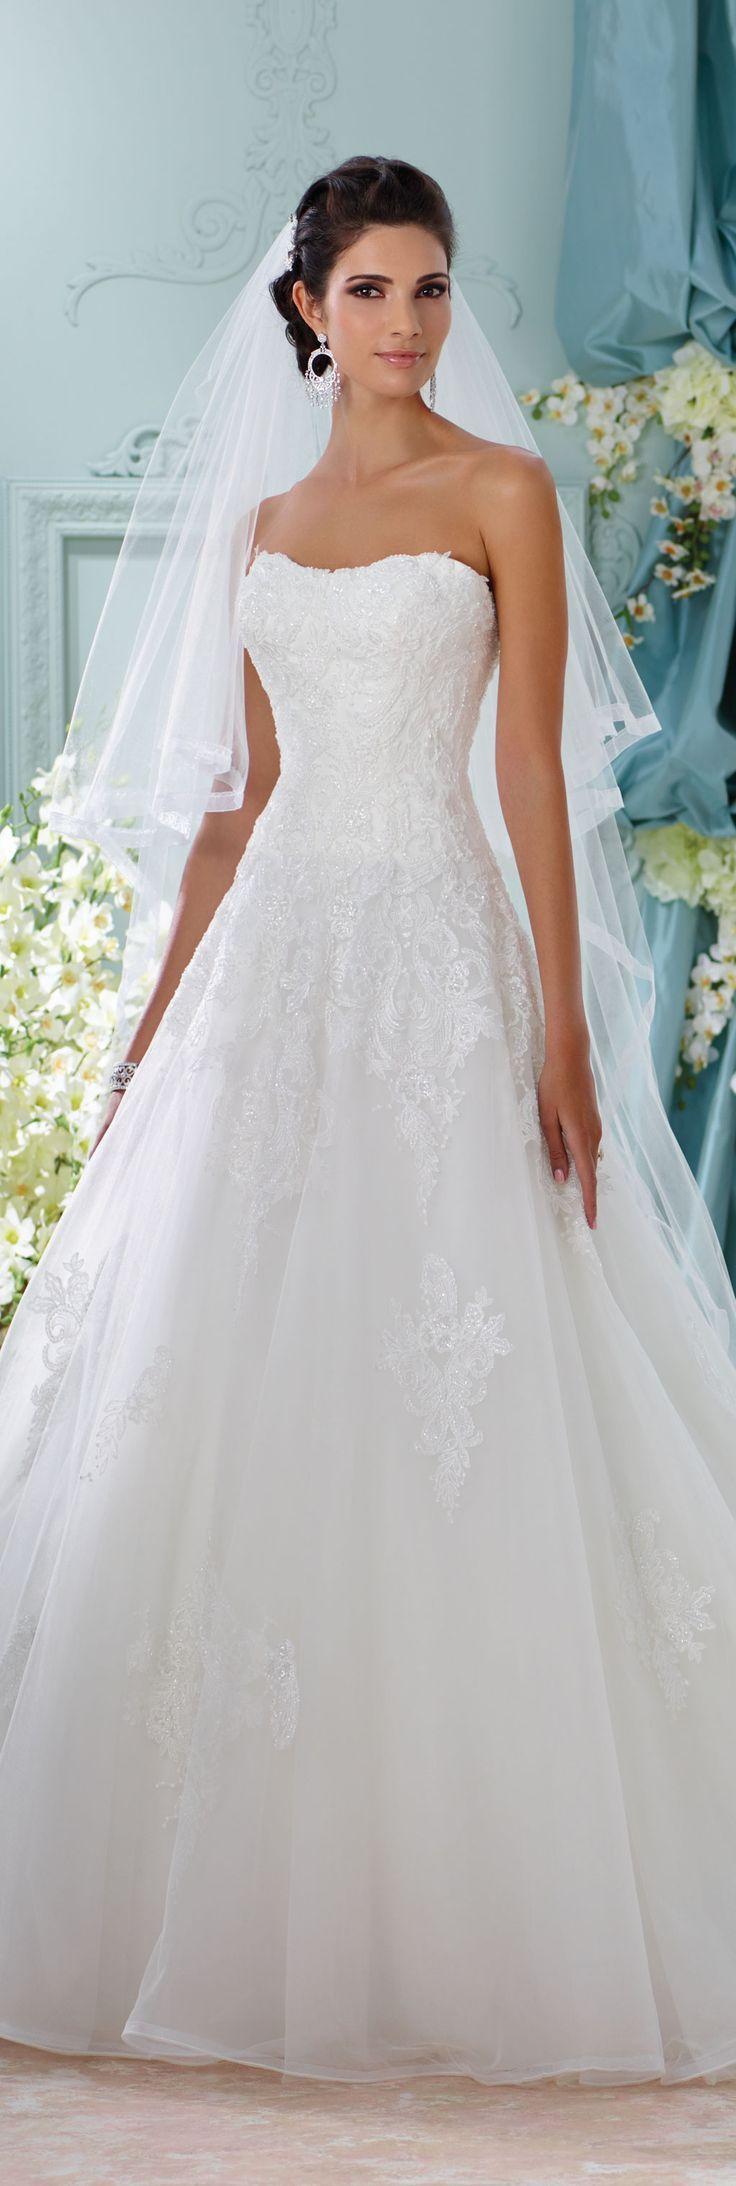 Wedding dresses lace sleeves long wedding dress weddings